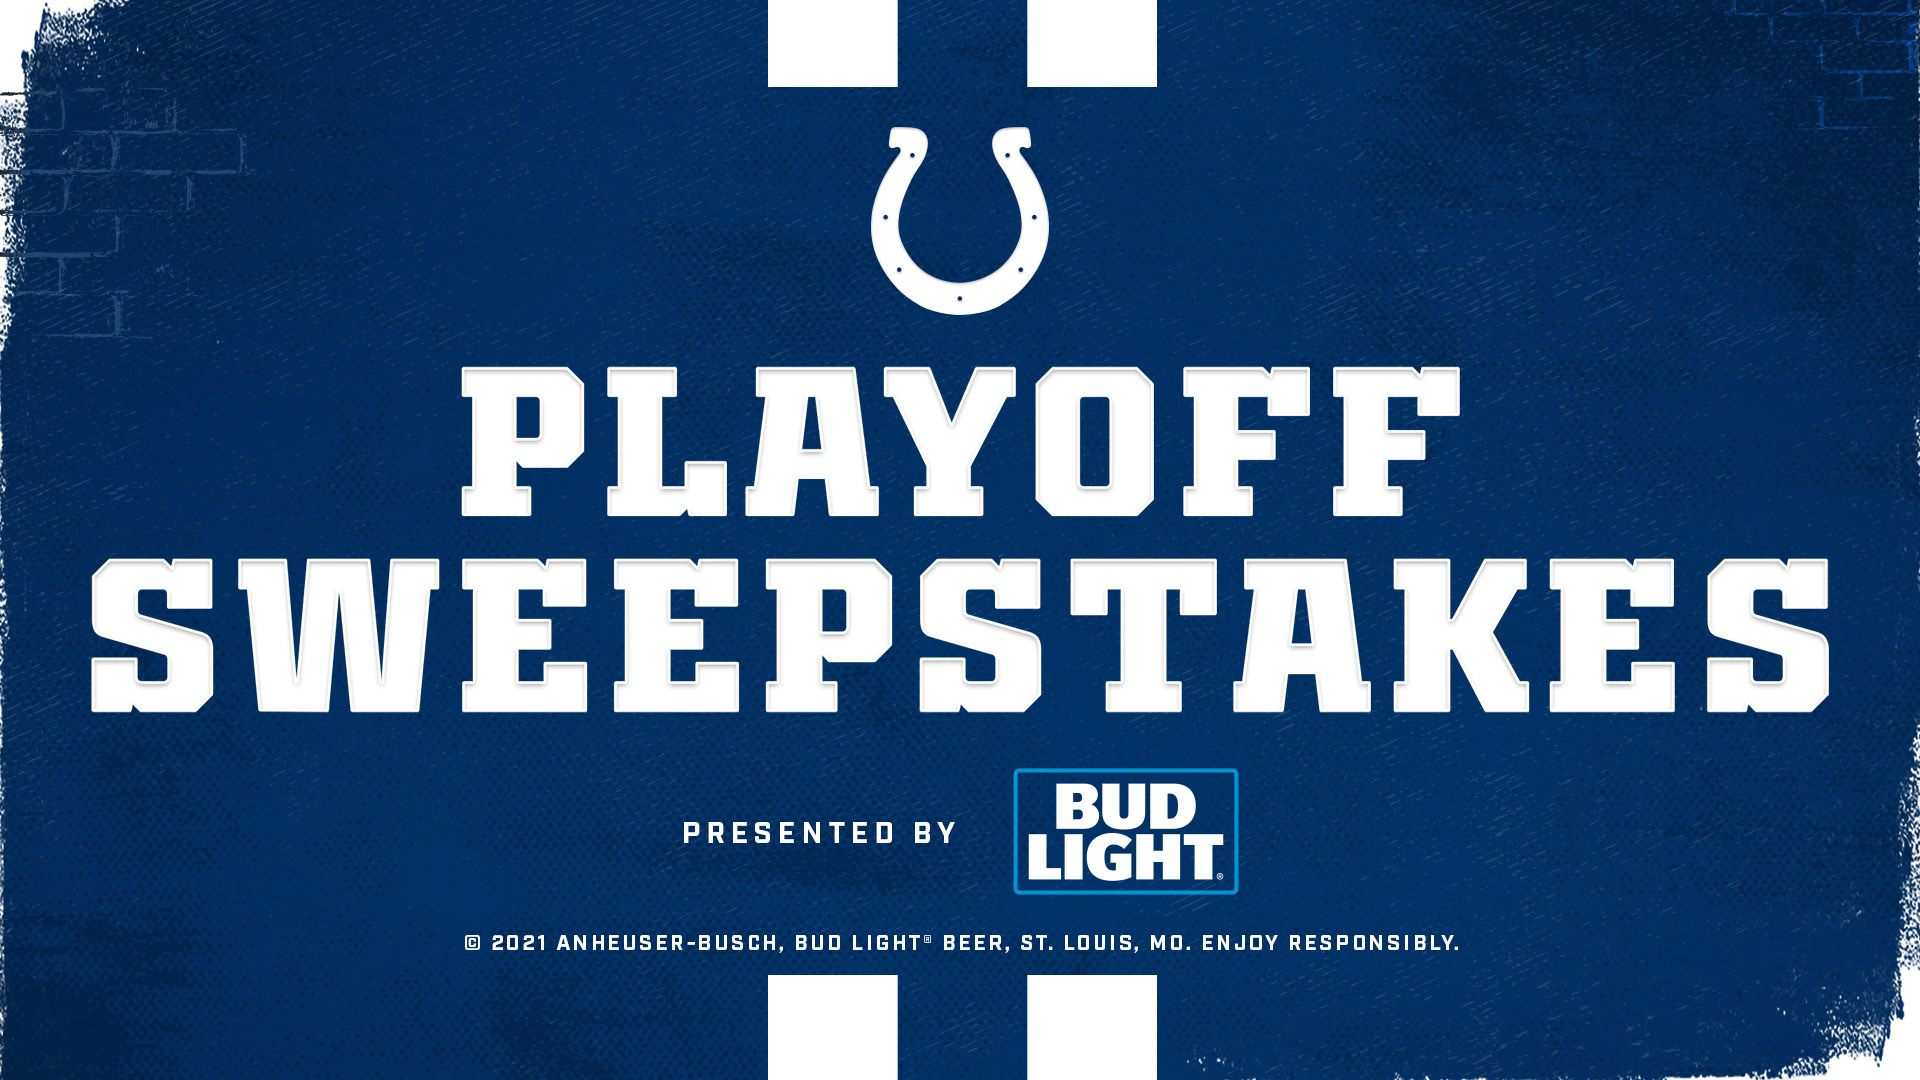 Playoff Sweepstakes, Presented by Bud Light